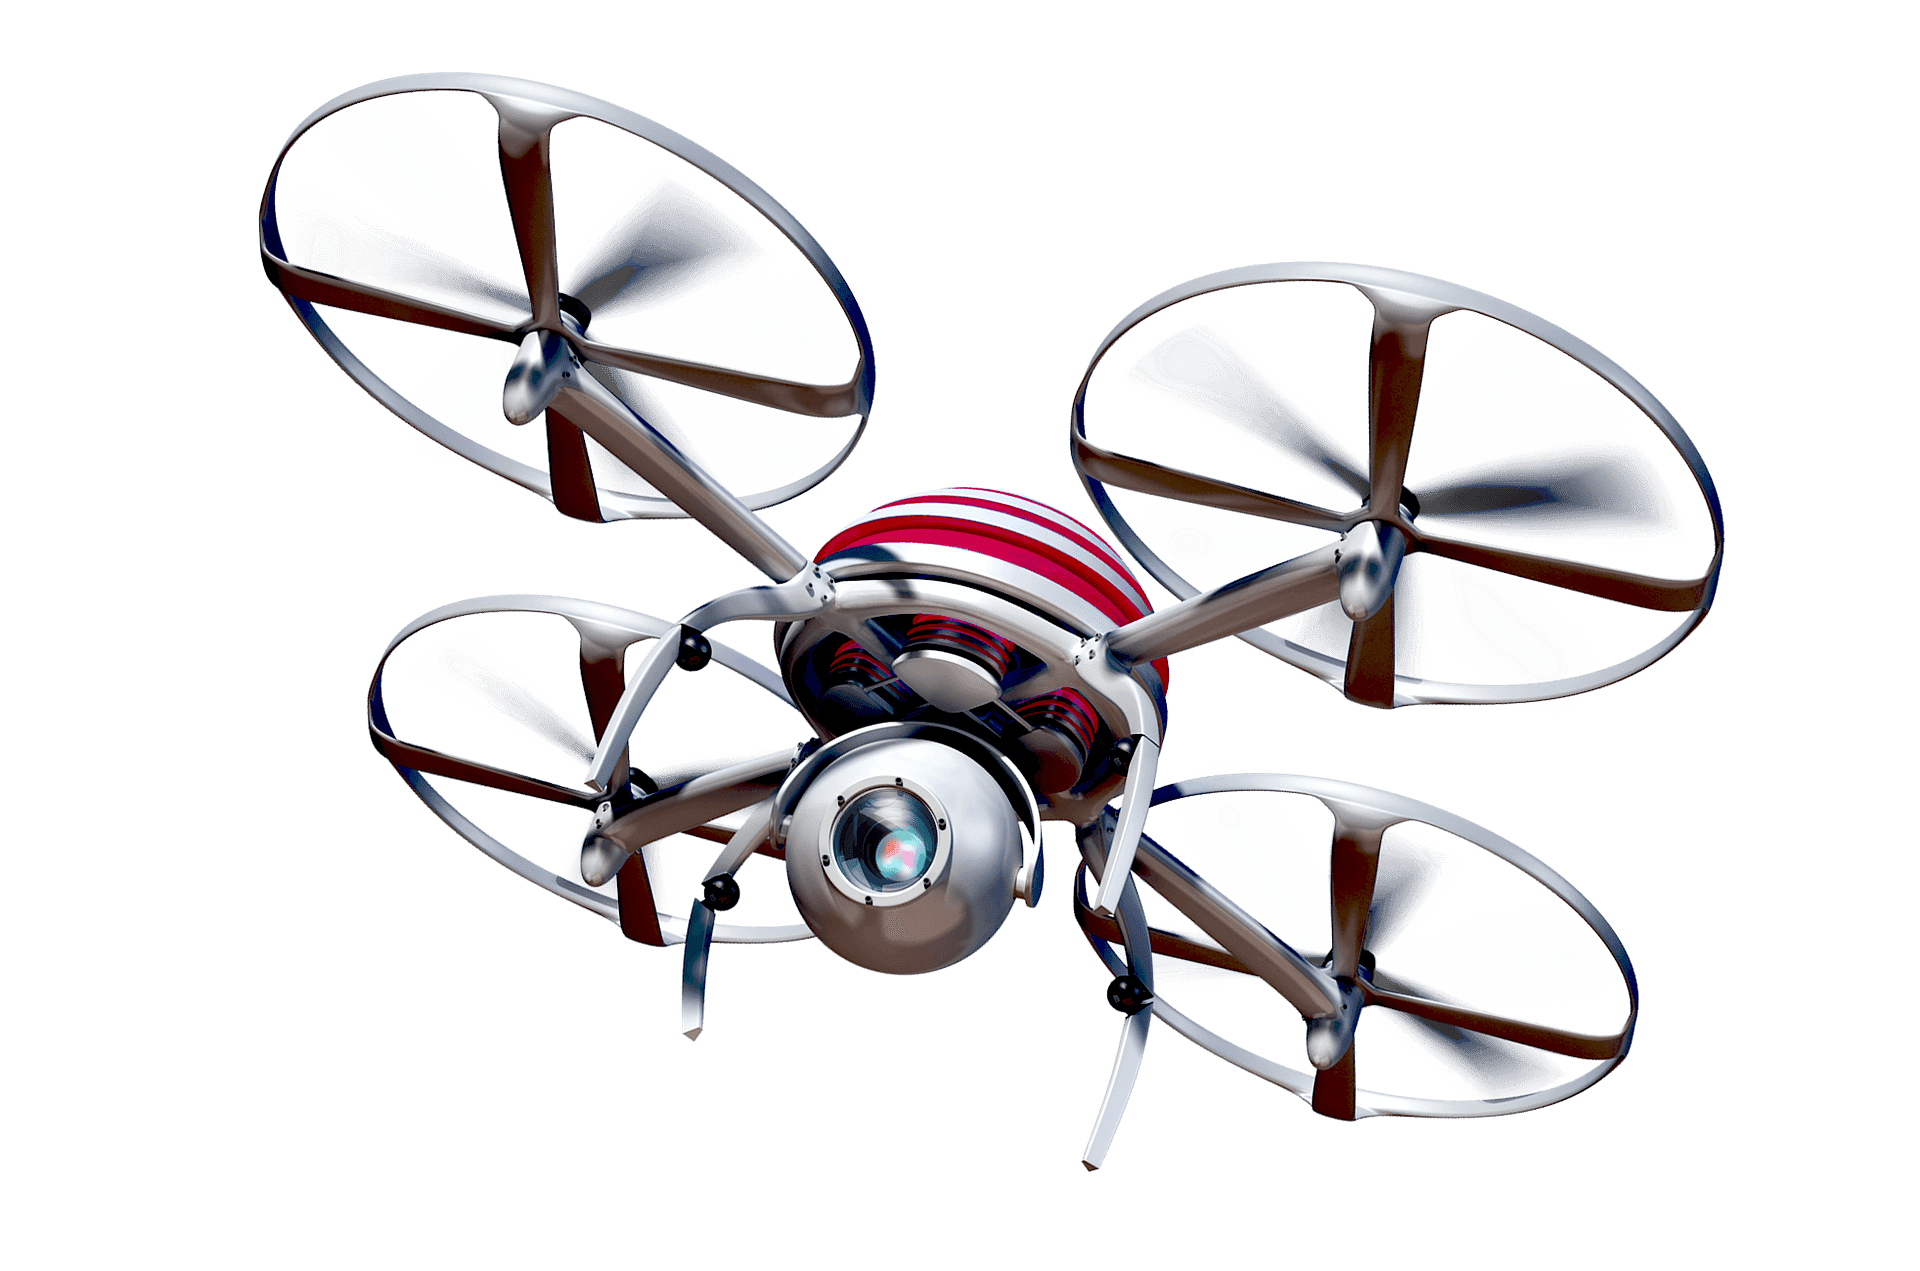 content/en-za/images/repository/isc/2020/a-spy-drone-with-large-camera-lens.png